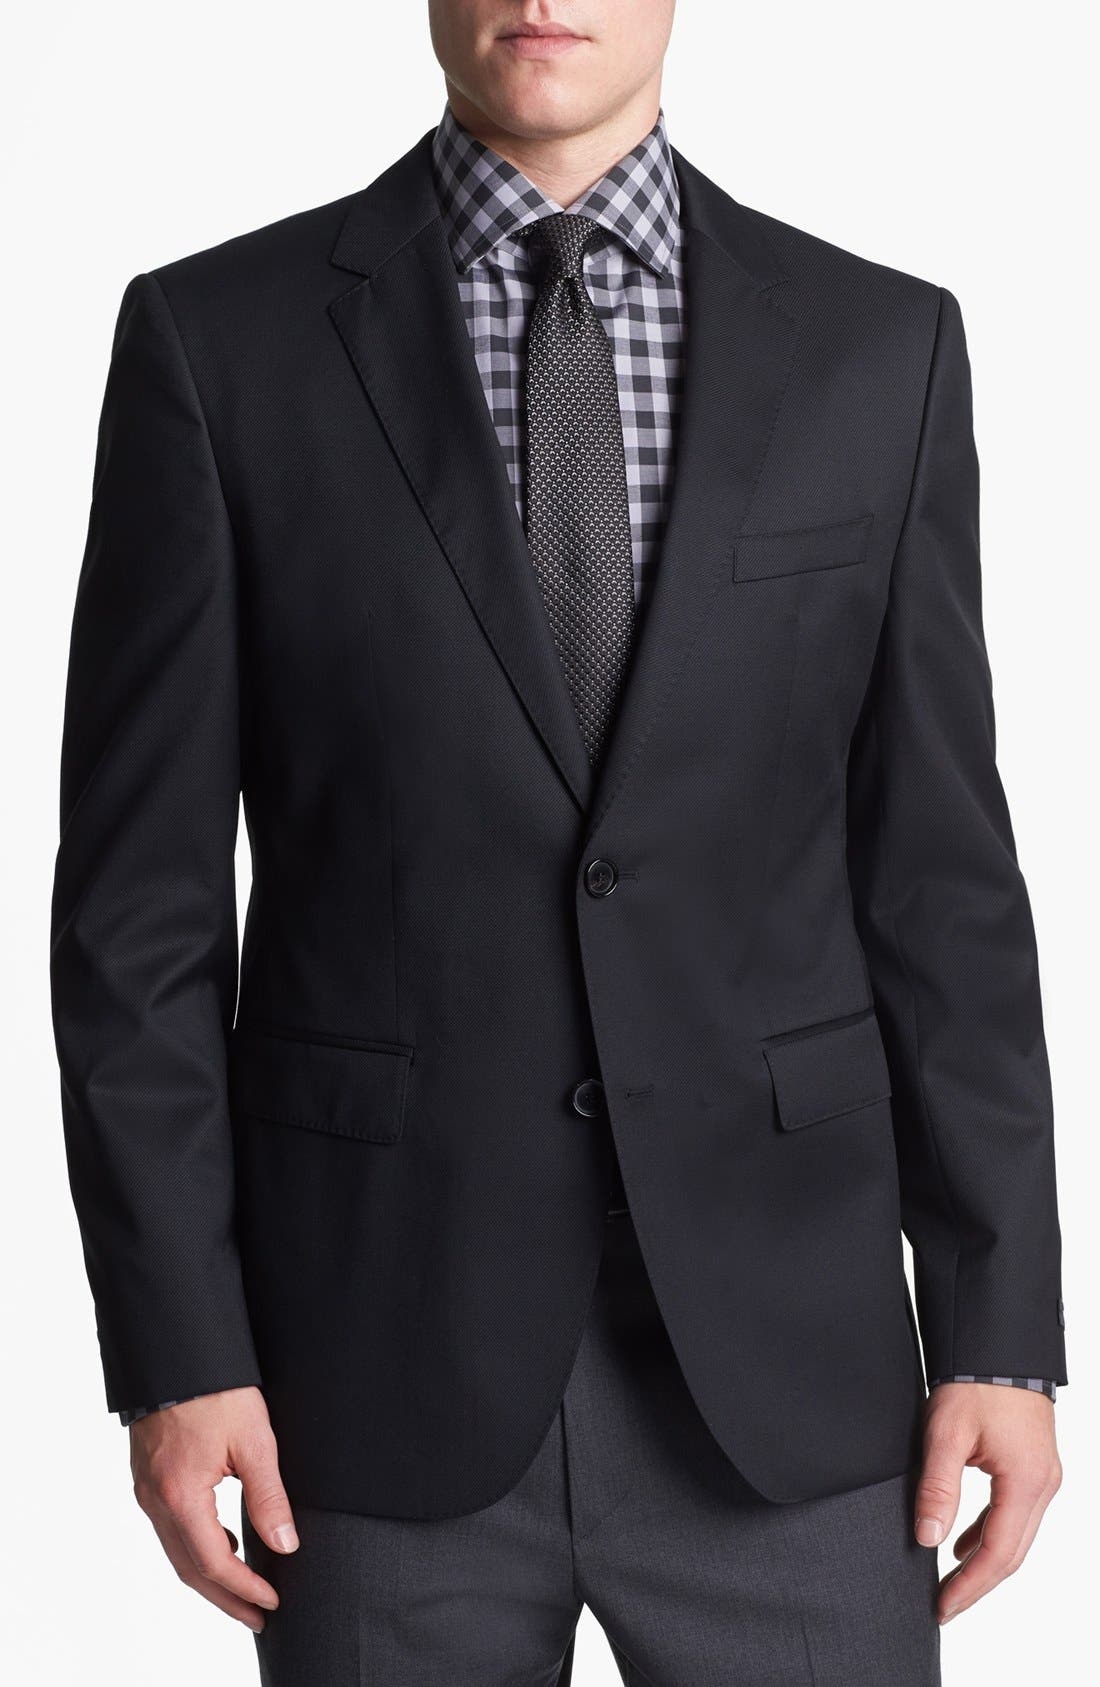 Alternate Image 1 Selected - BOSS HUGO BOSS 'The James 2' Trim Fit Wool Sportcoat